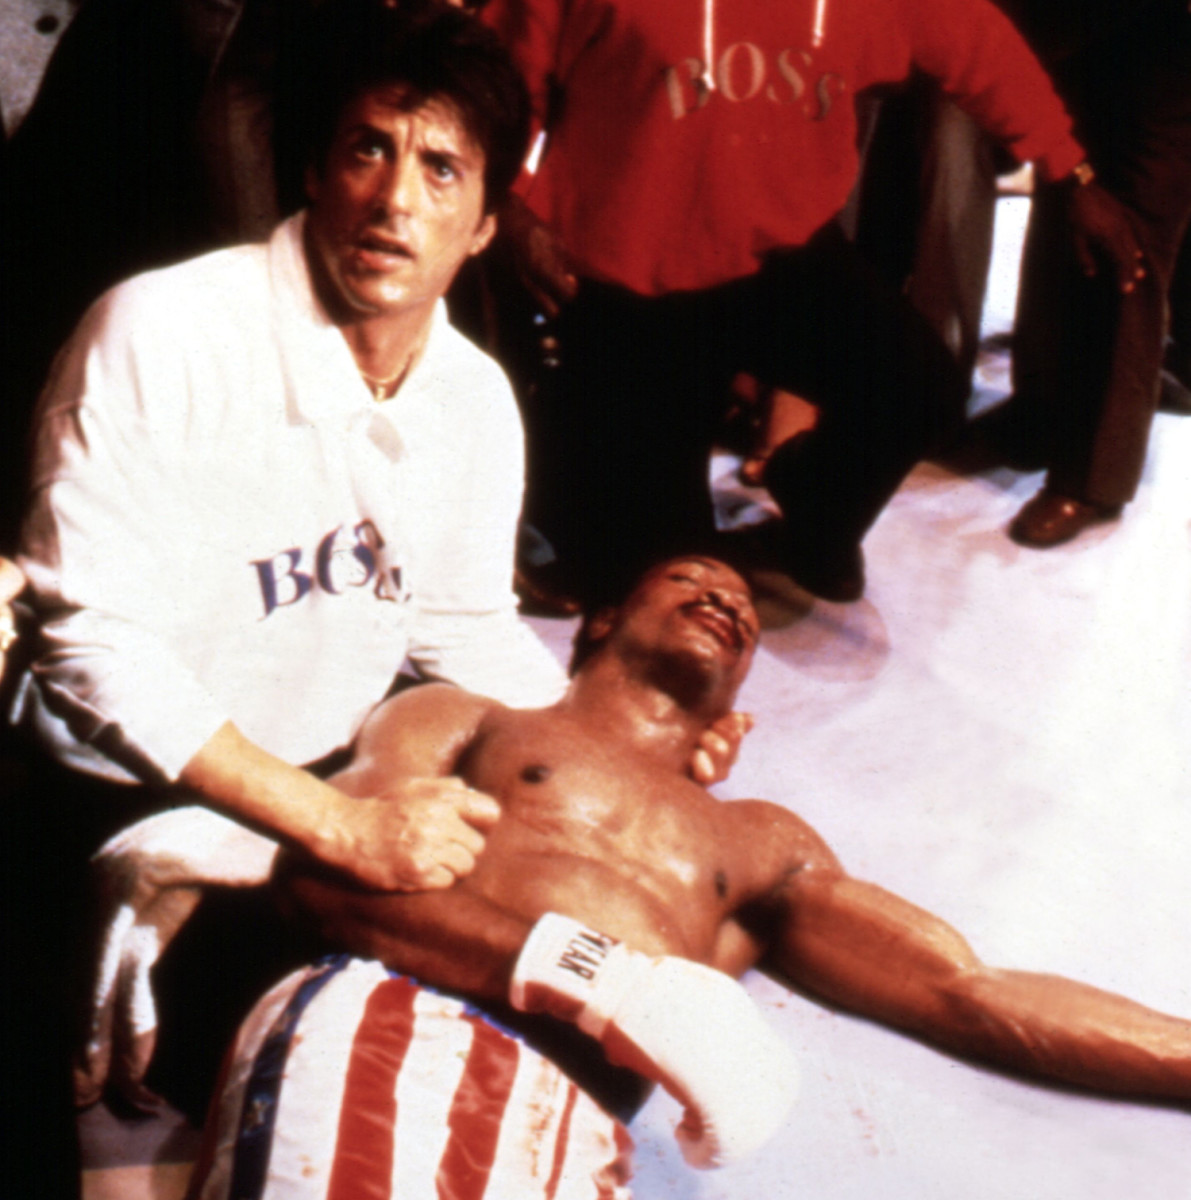 Viktor Drago's father, Ivan, delivered a fatal right hook to Creed's father in Rocky IV, and Apollo died in the ring in Rocky's arms.